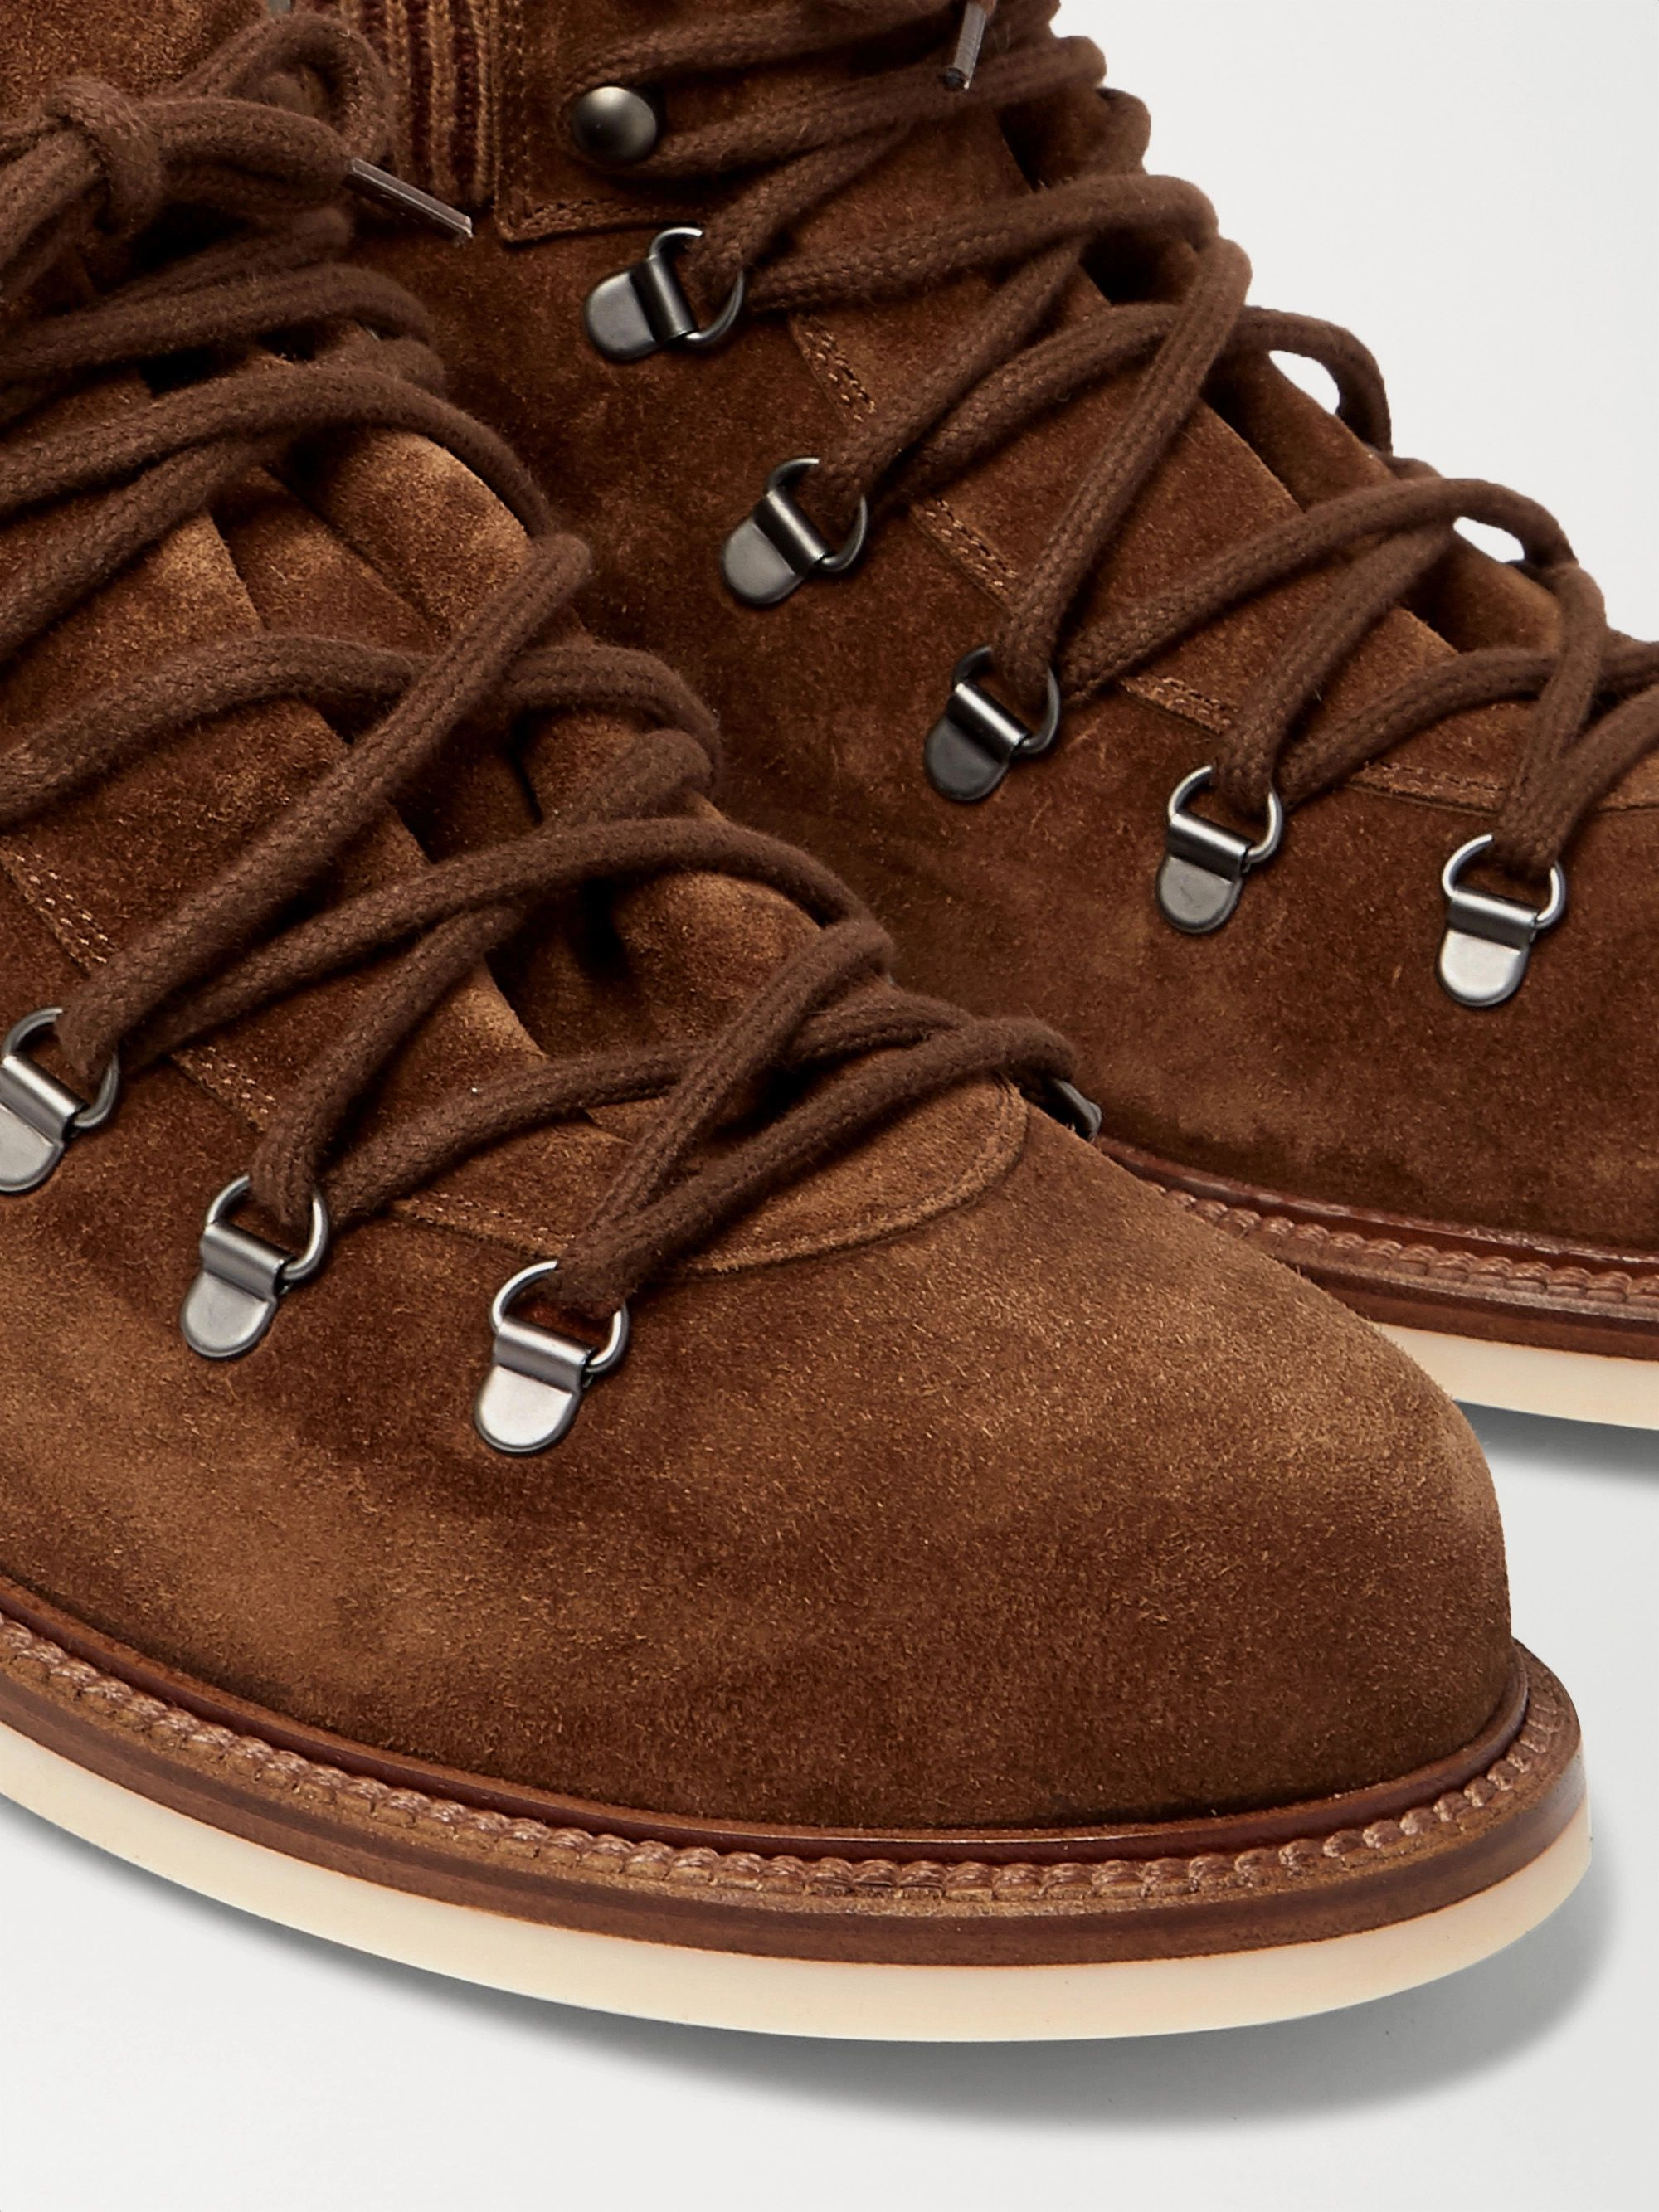 LORO PIANA Laax Walk Baby Cashmere-Trimmed Suede Hiking Boots